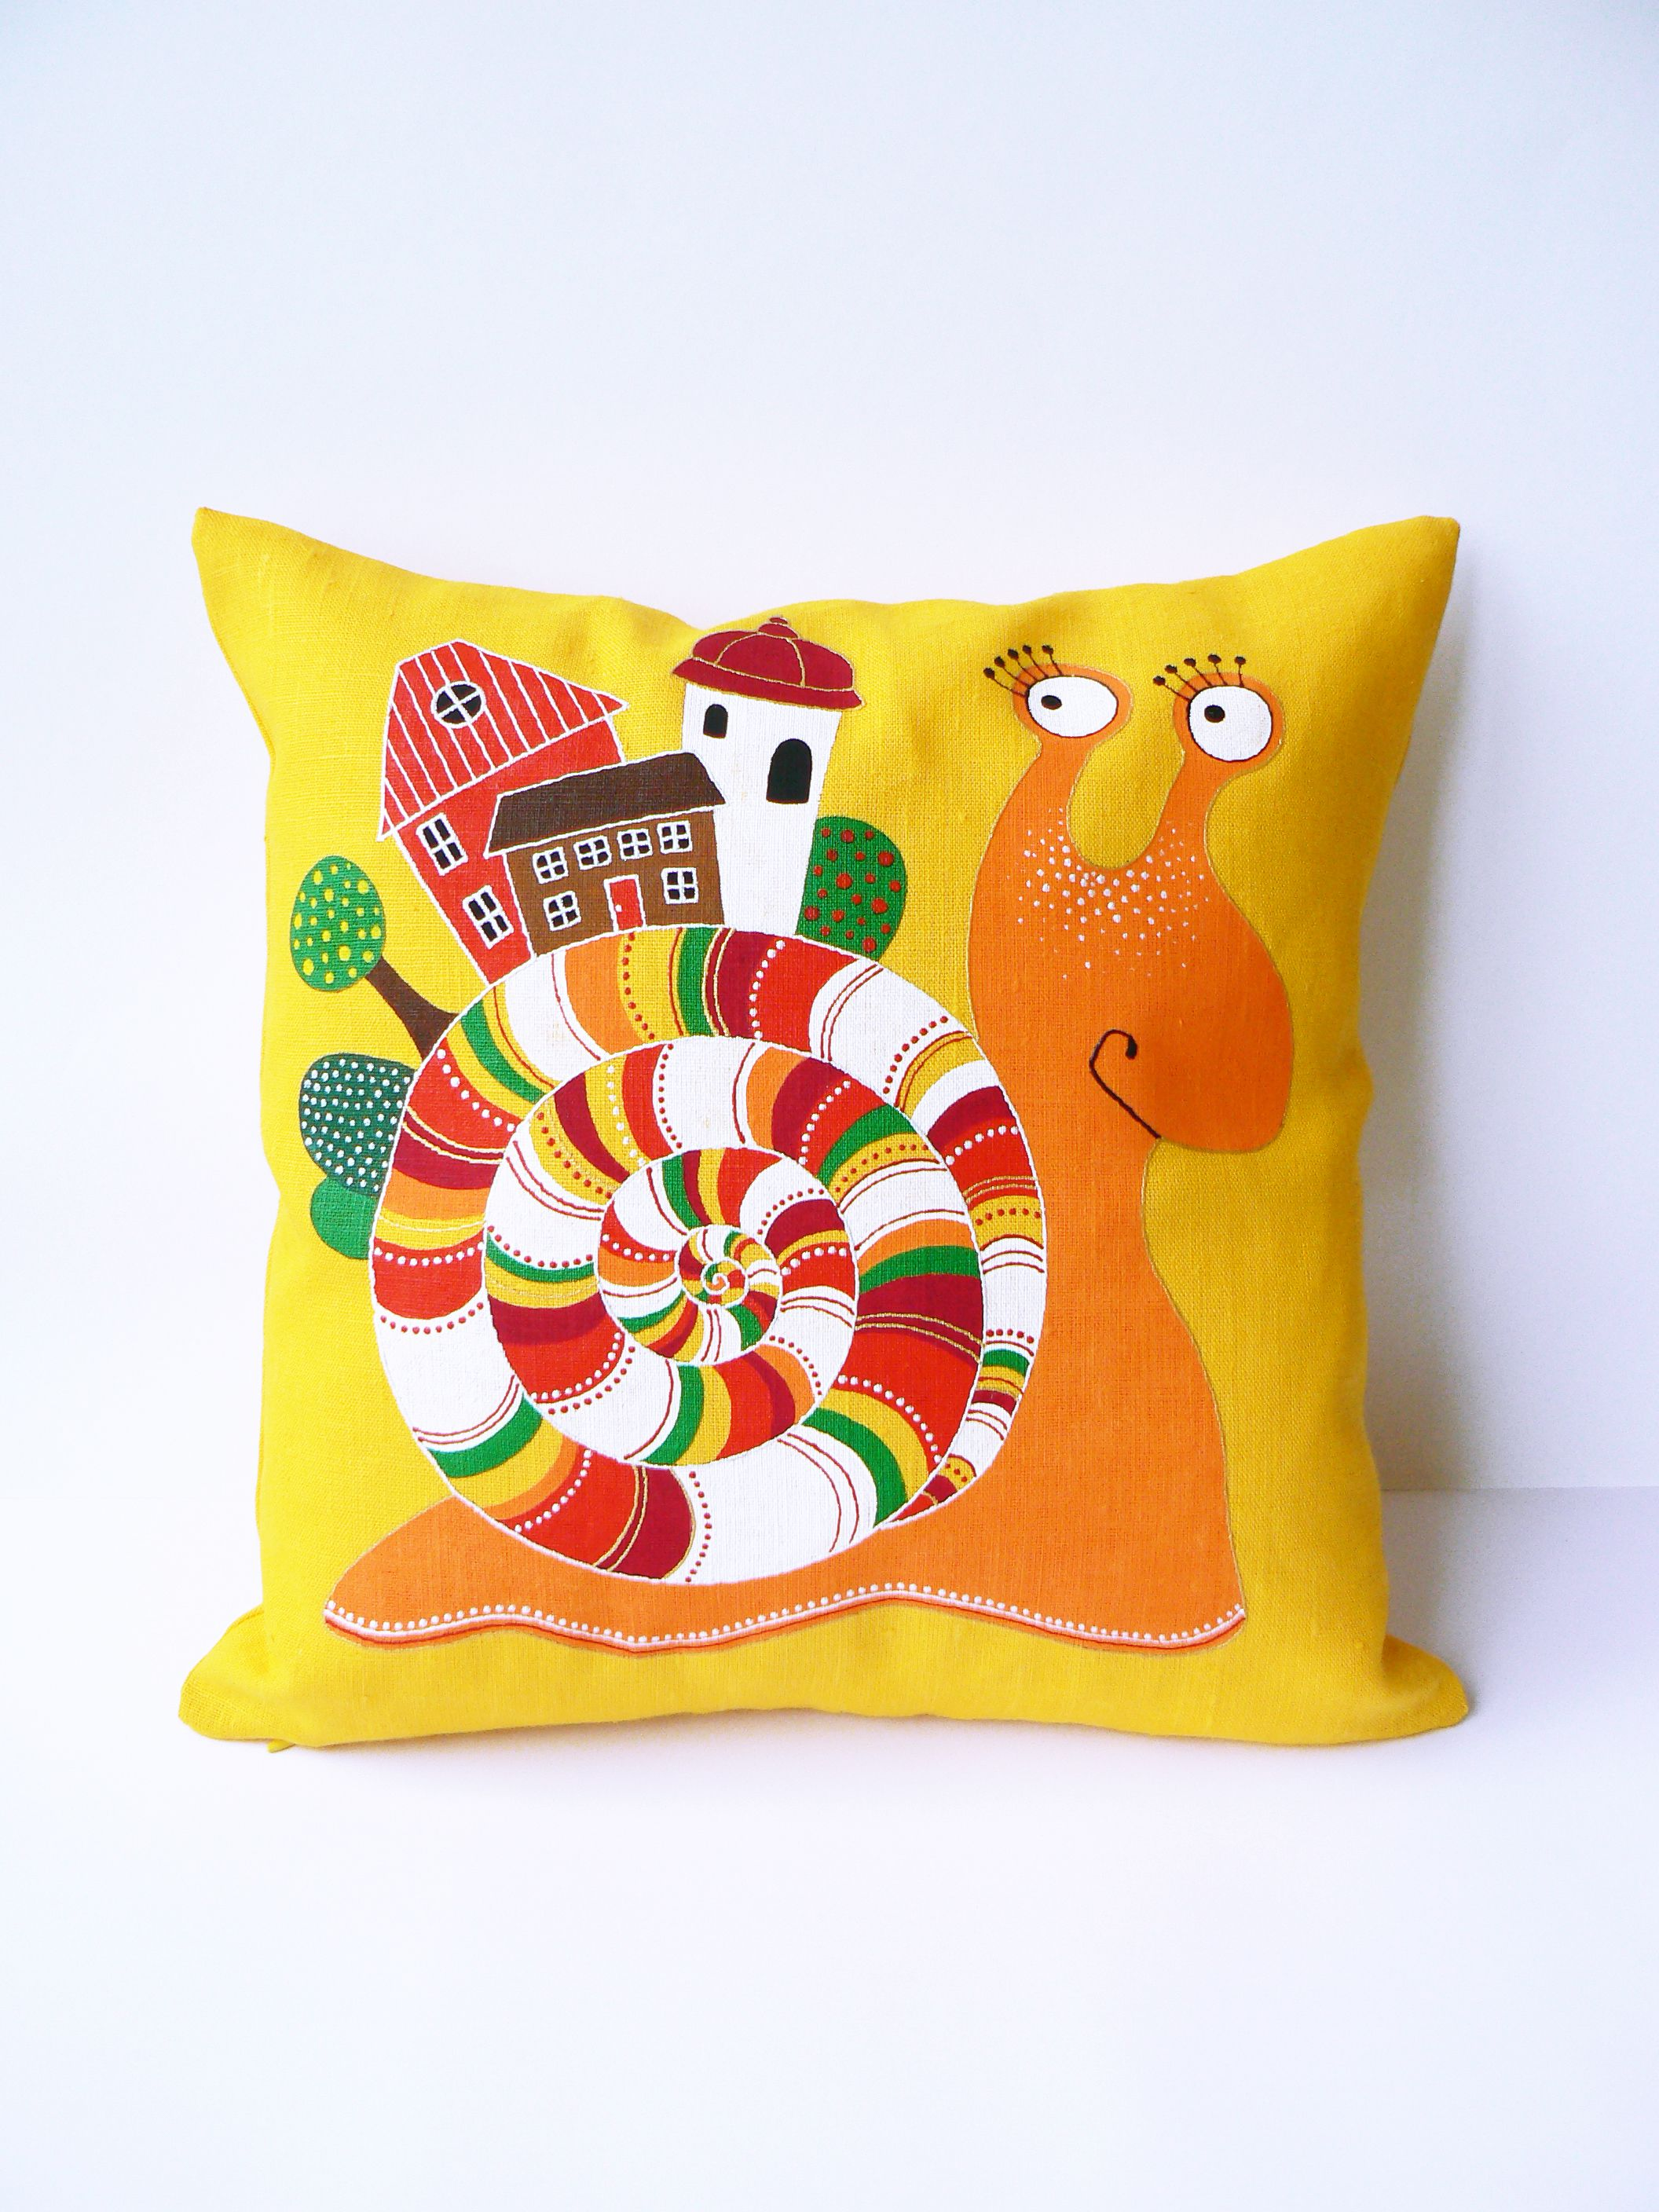 #pillow, #handmade, #newtdesign